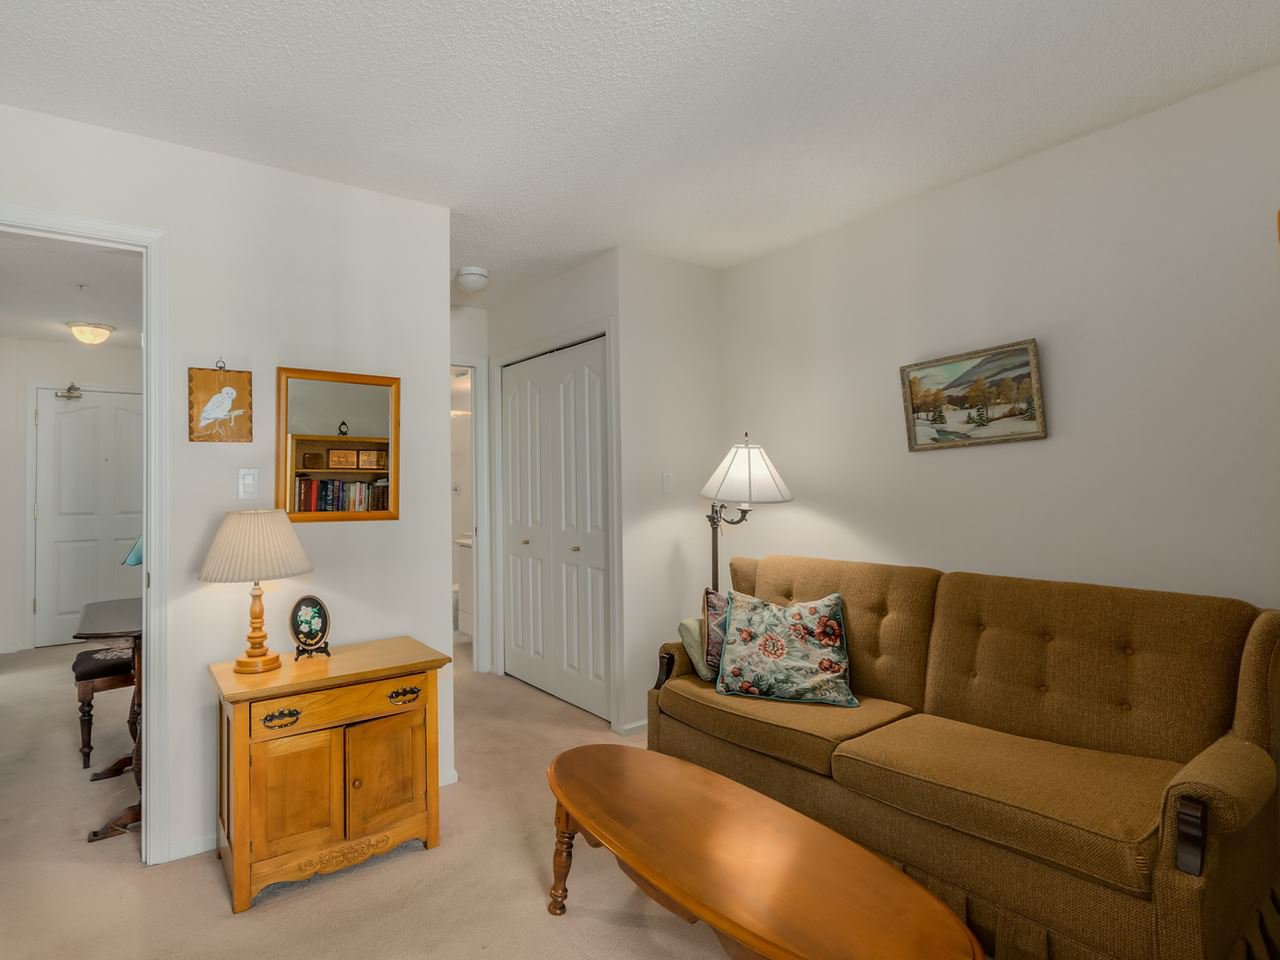 Photo 12: Photos: 403 728 PRINCESS Street in New Westminster: Uptown NW Condo for sale : MLS®# R2061685